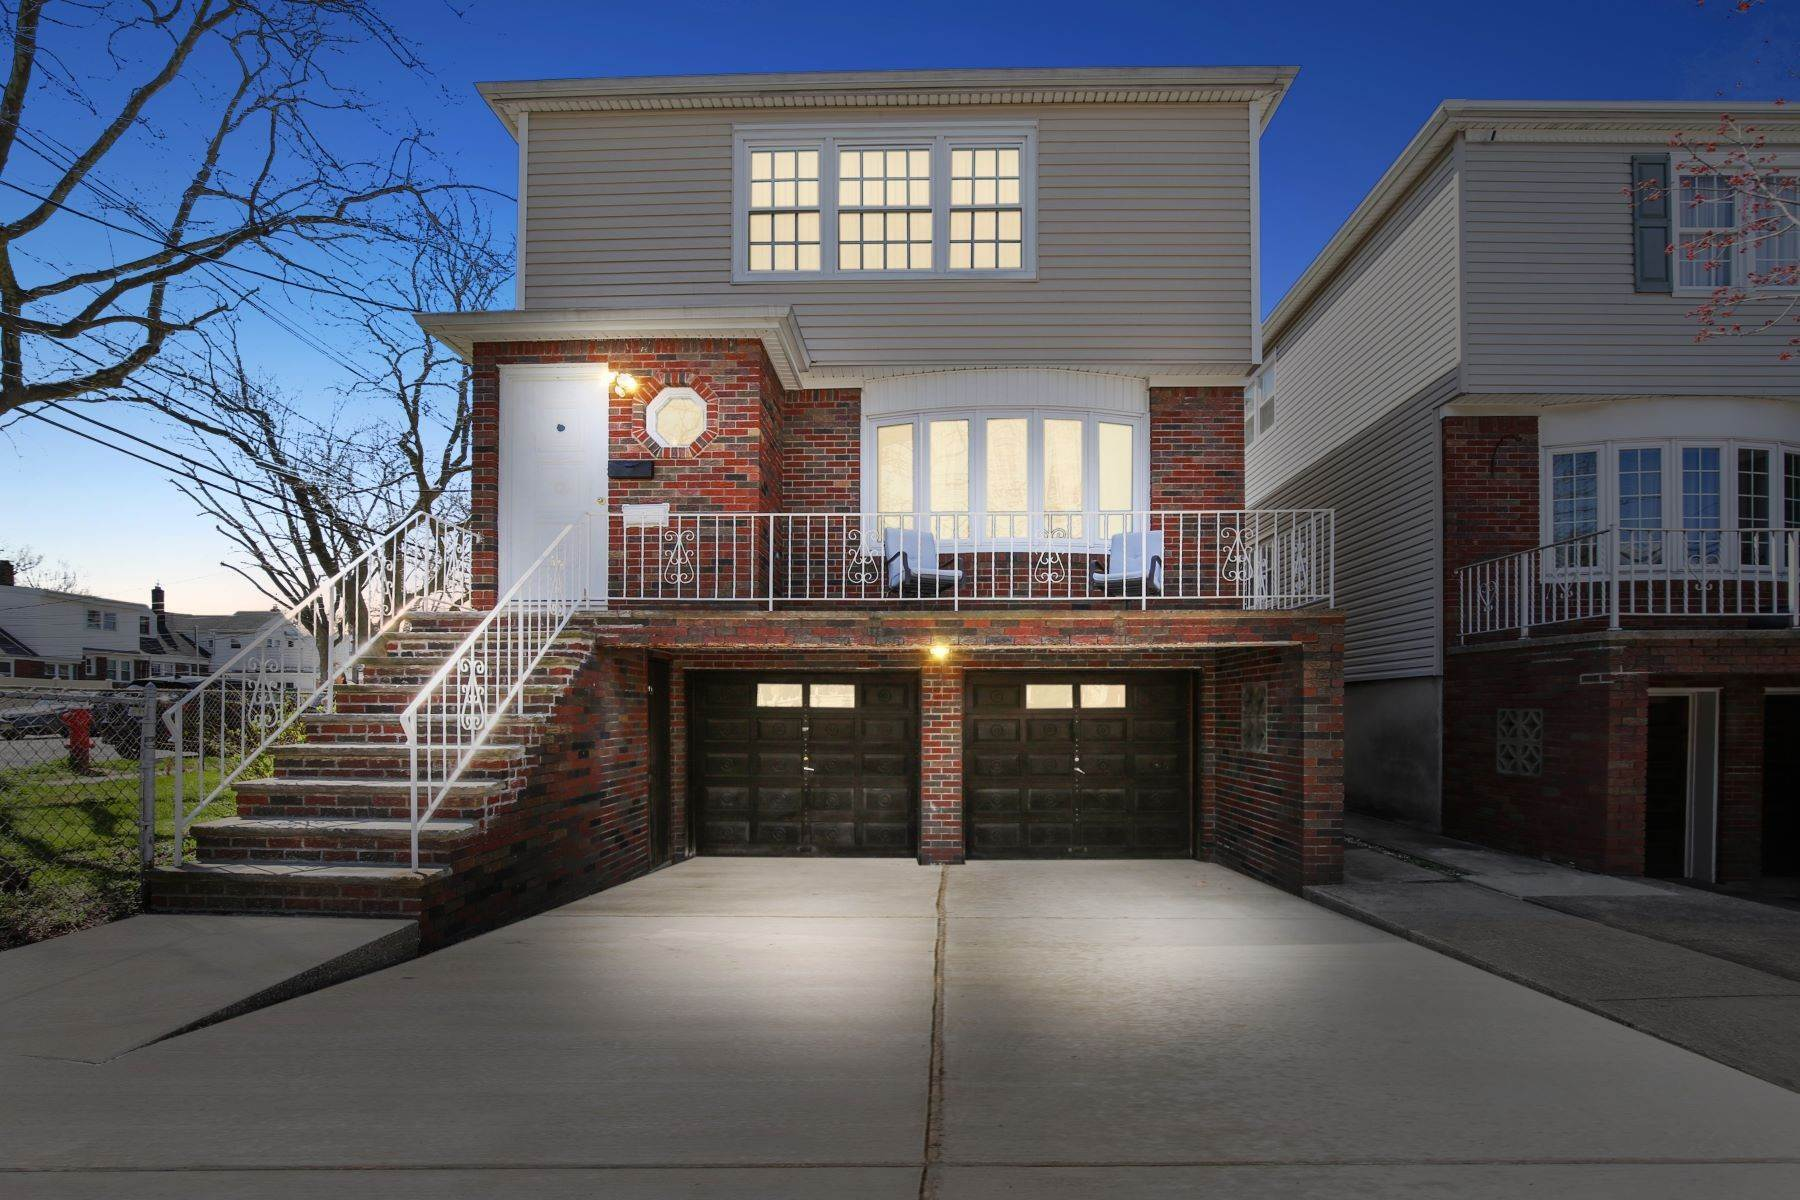 Multi-Family Homes for Sale at Welcome home! 150 West 18th Street Bayonne, New Jersey 07002 United States